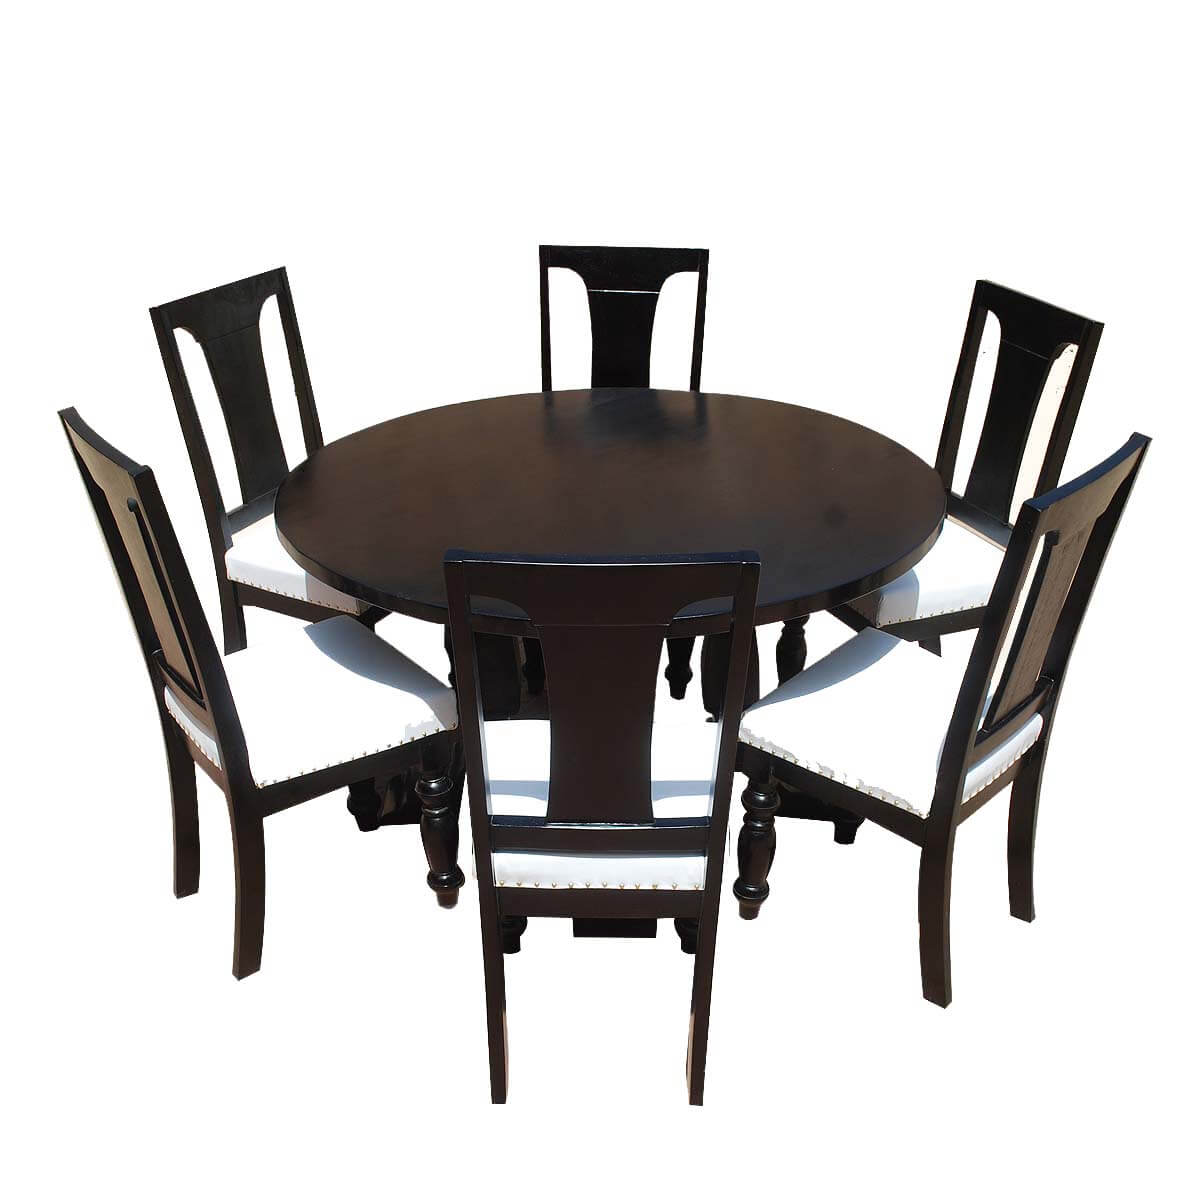 Dining Room Sets Wood: California Solid Wood & Leather 7p Round Dining Room Set